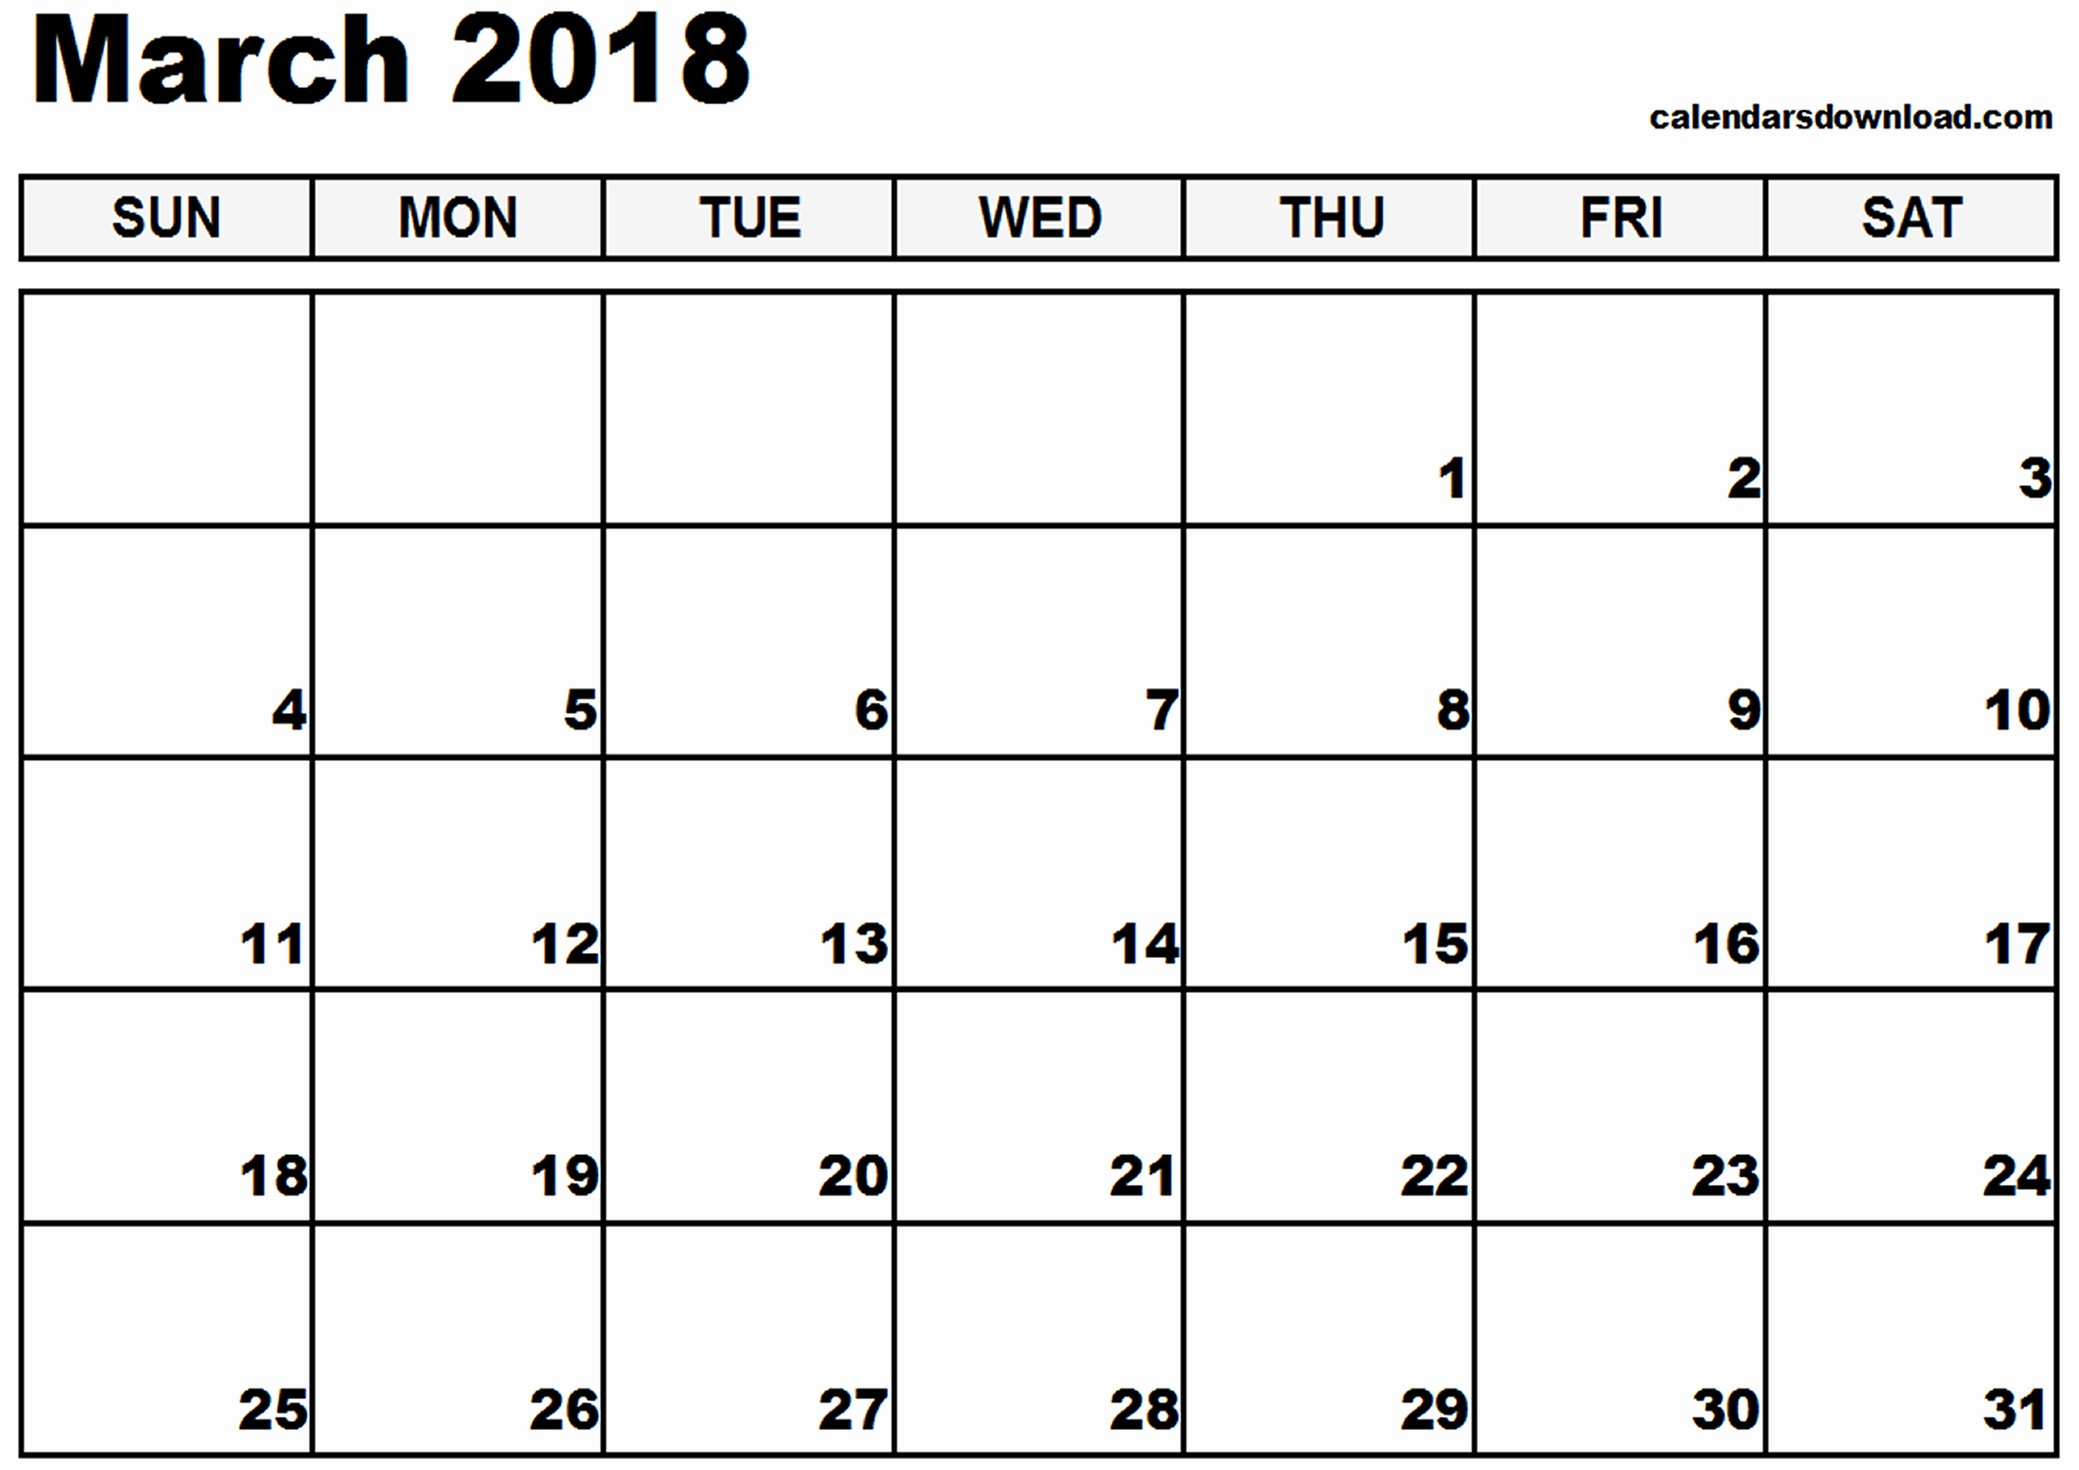 Free Printable 2018 Calendar Templates Awesome March 2018 Calendar Template